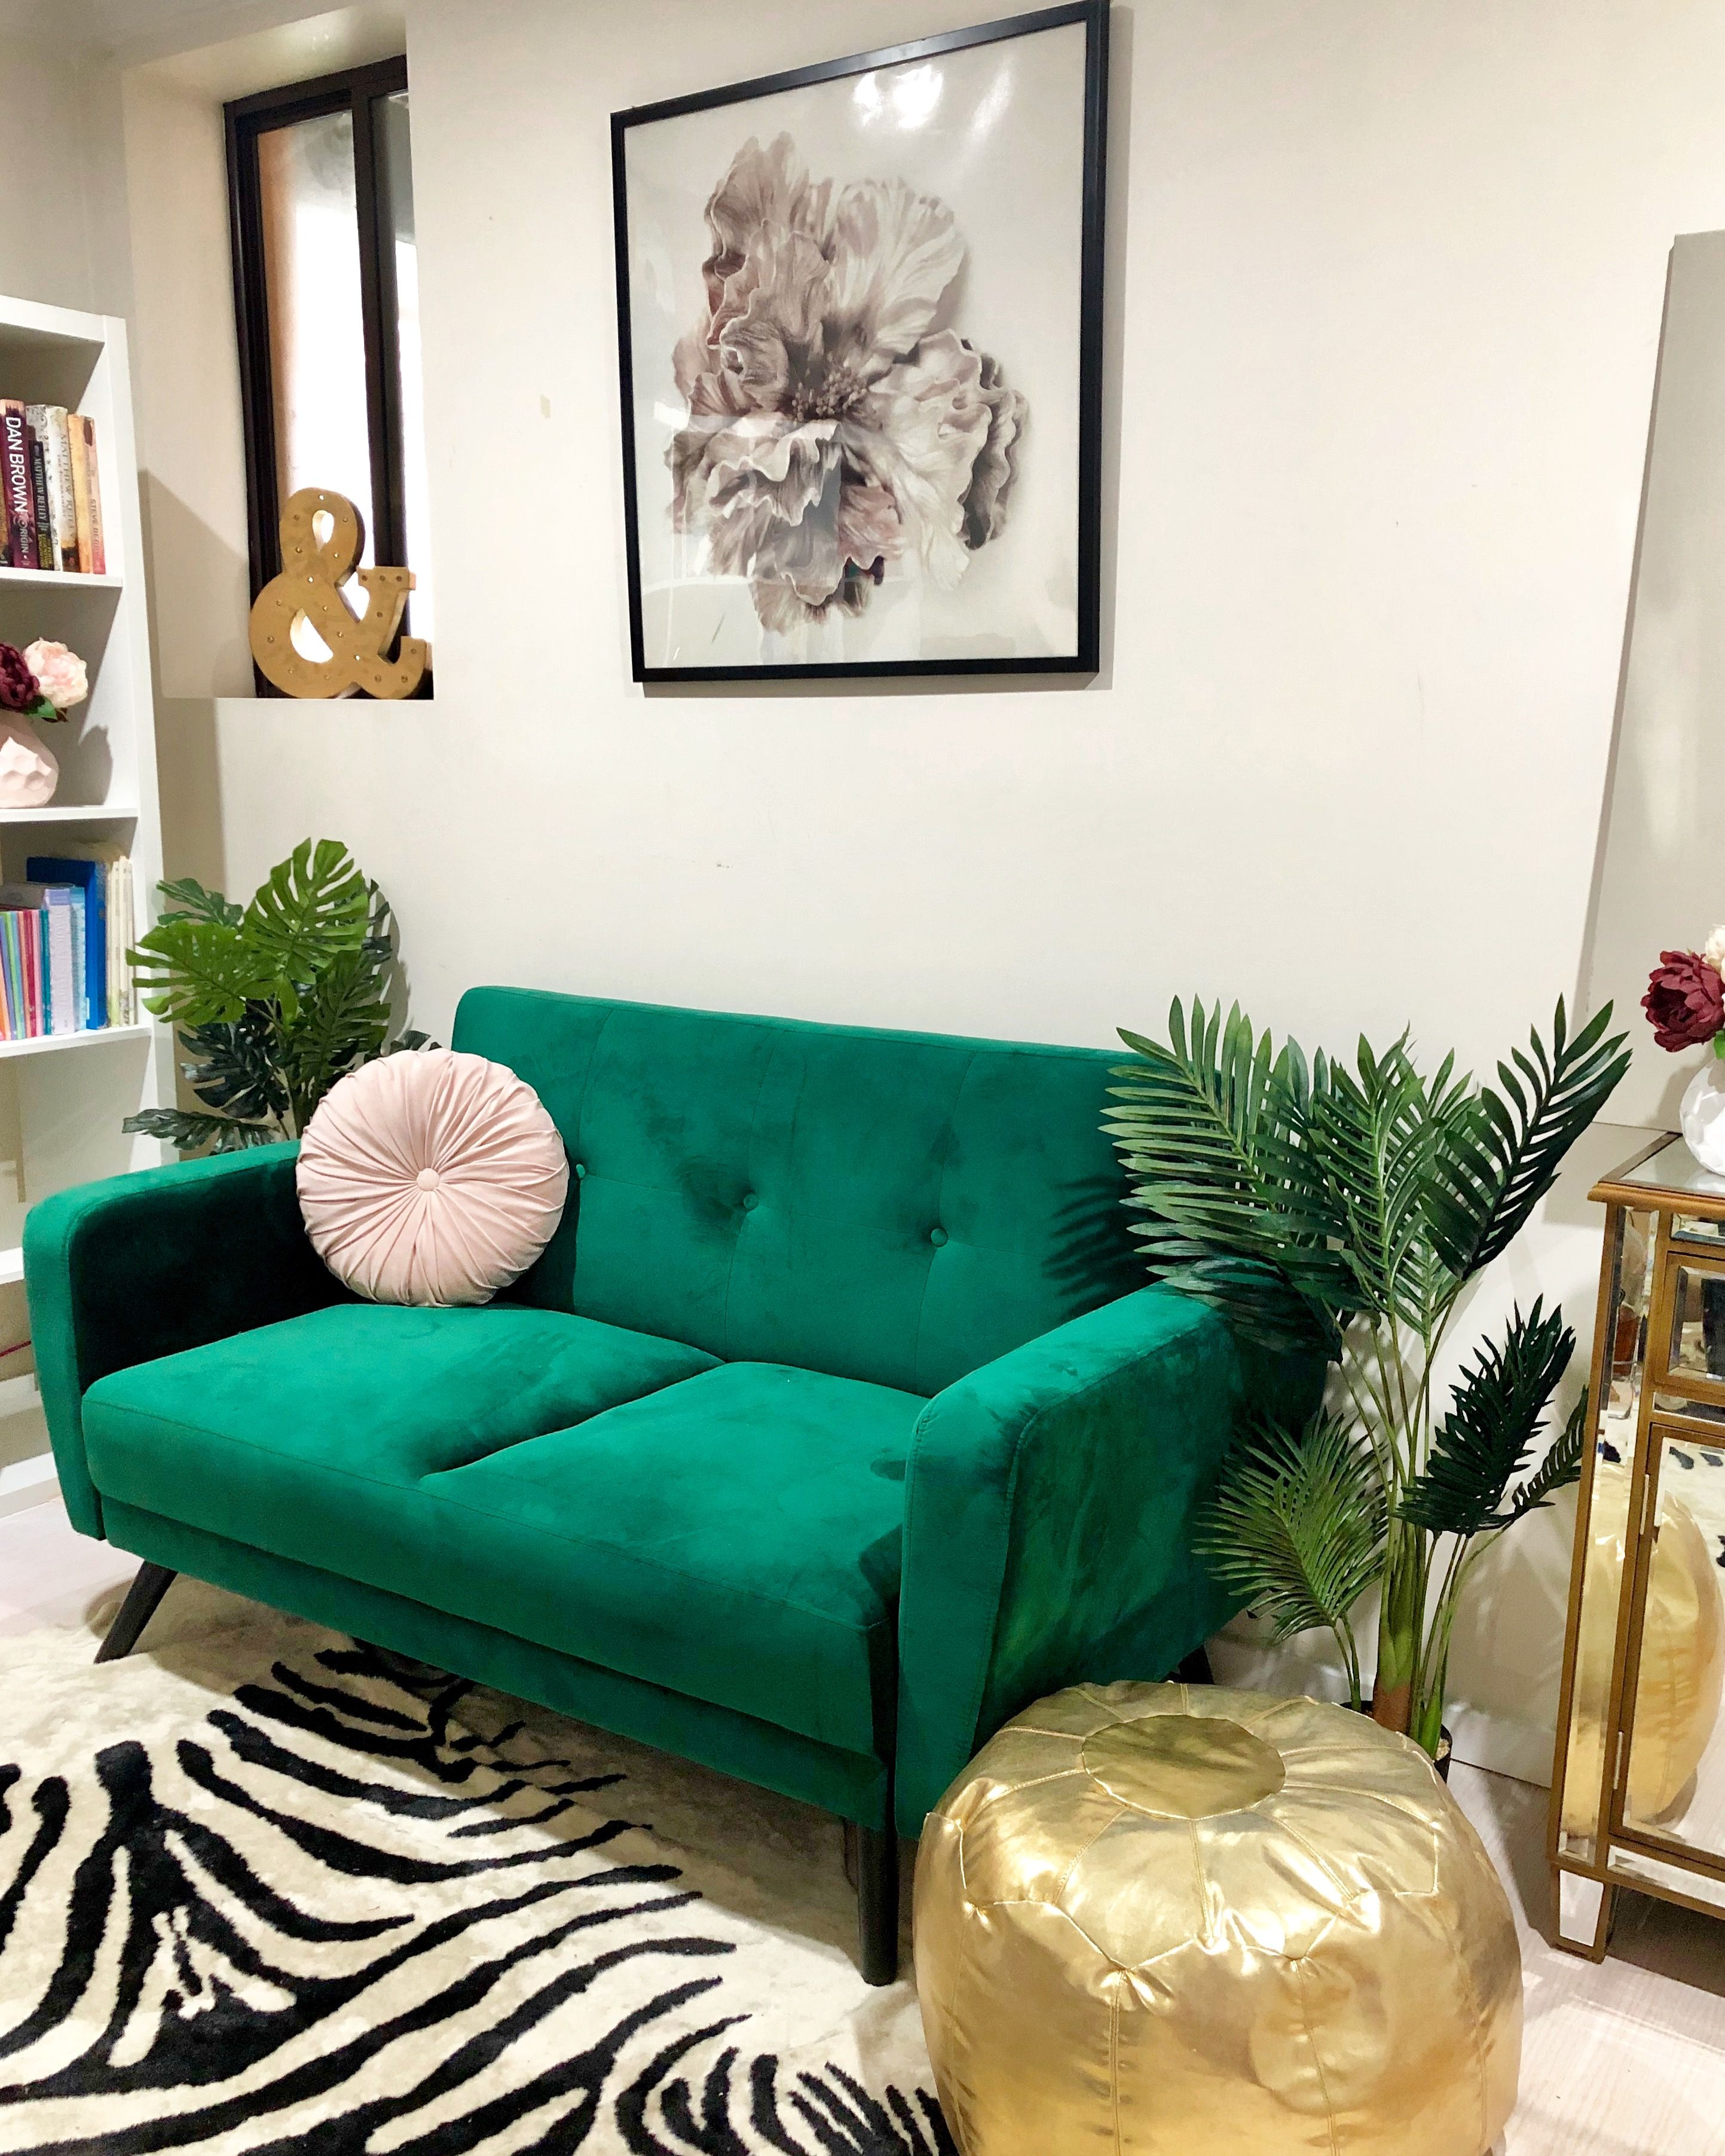 My Home Study And Home Library Using An Forest Green Or Emerald Green Sofa With Pink And Gold Accents From K Green Sofa Living Room Green Sofa Pink Living Room